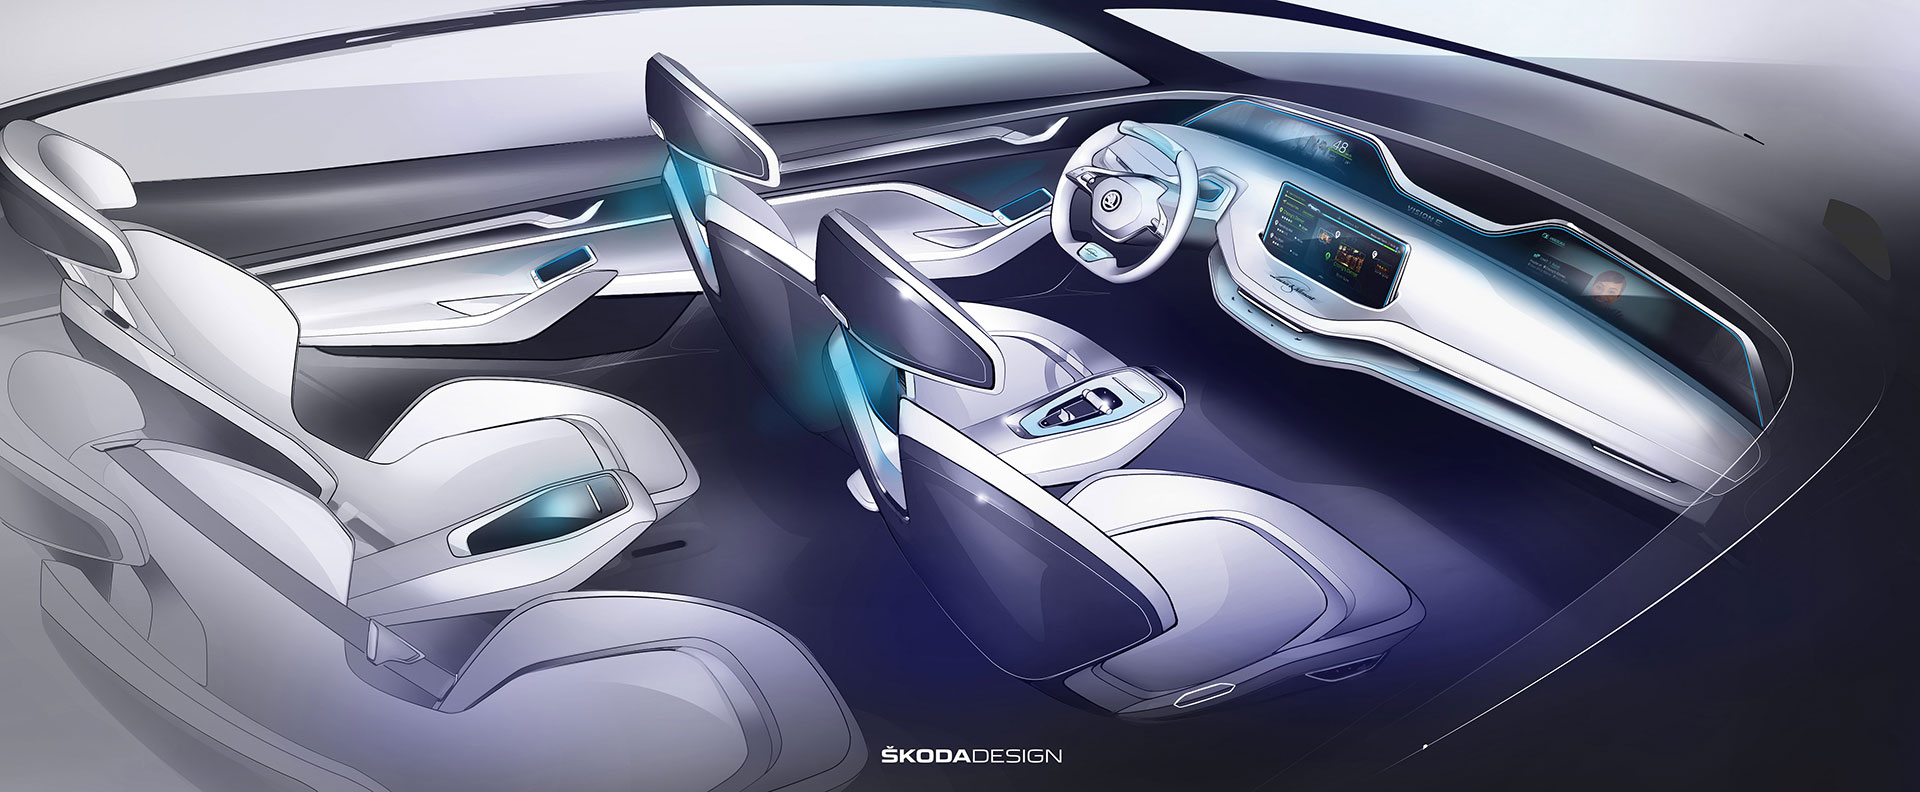 Skoda vision e concept interior design sketch render car - Car interior design ...